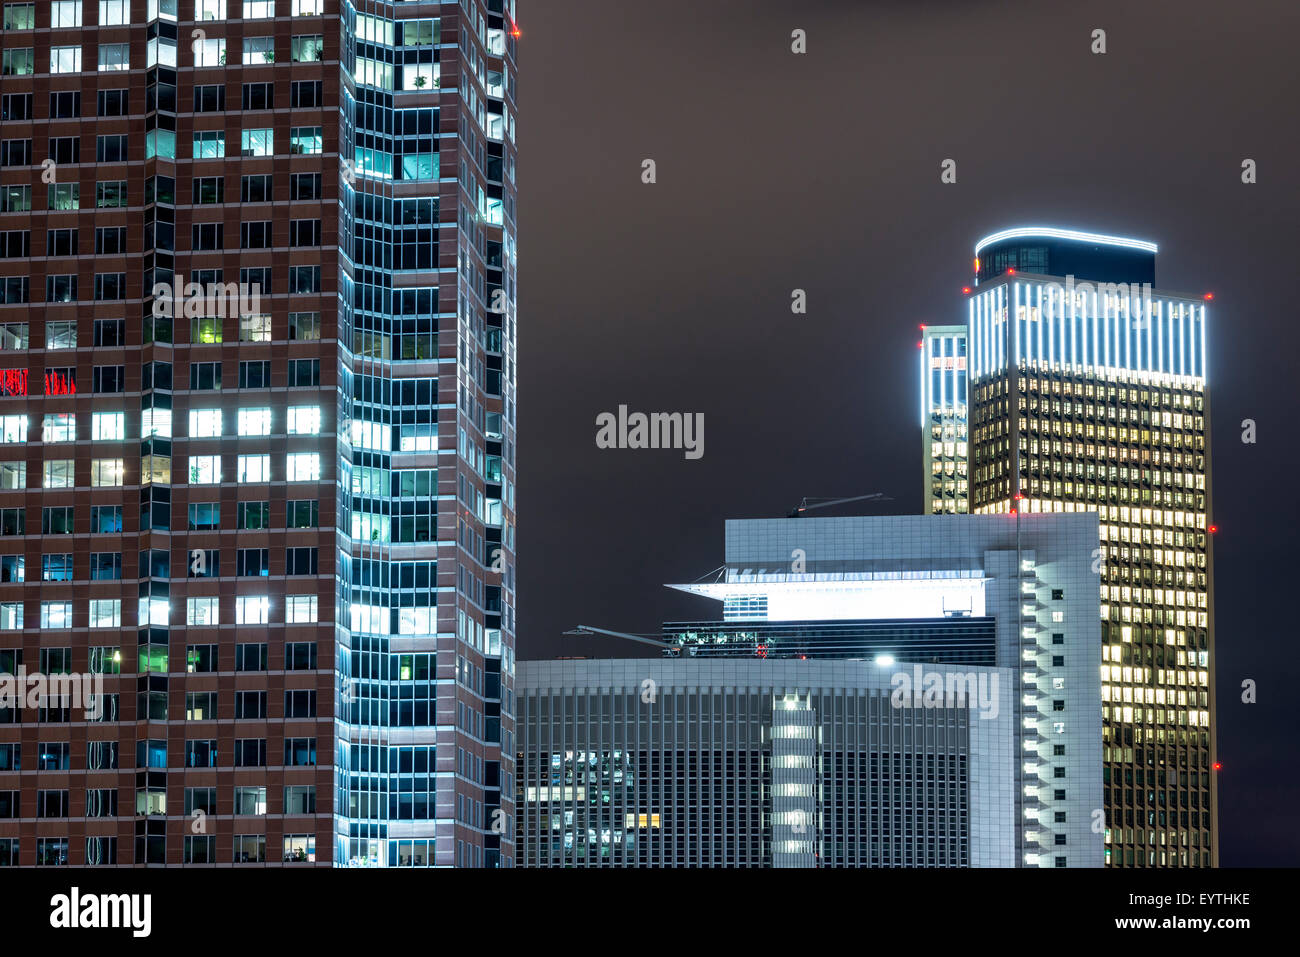 Germany, Hesse, Frankfurt am Main, architecture detail of the Messeturm (Trade Fair Tower), Castor, Pollux and the Stock Photo